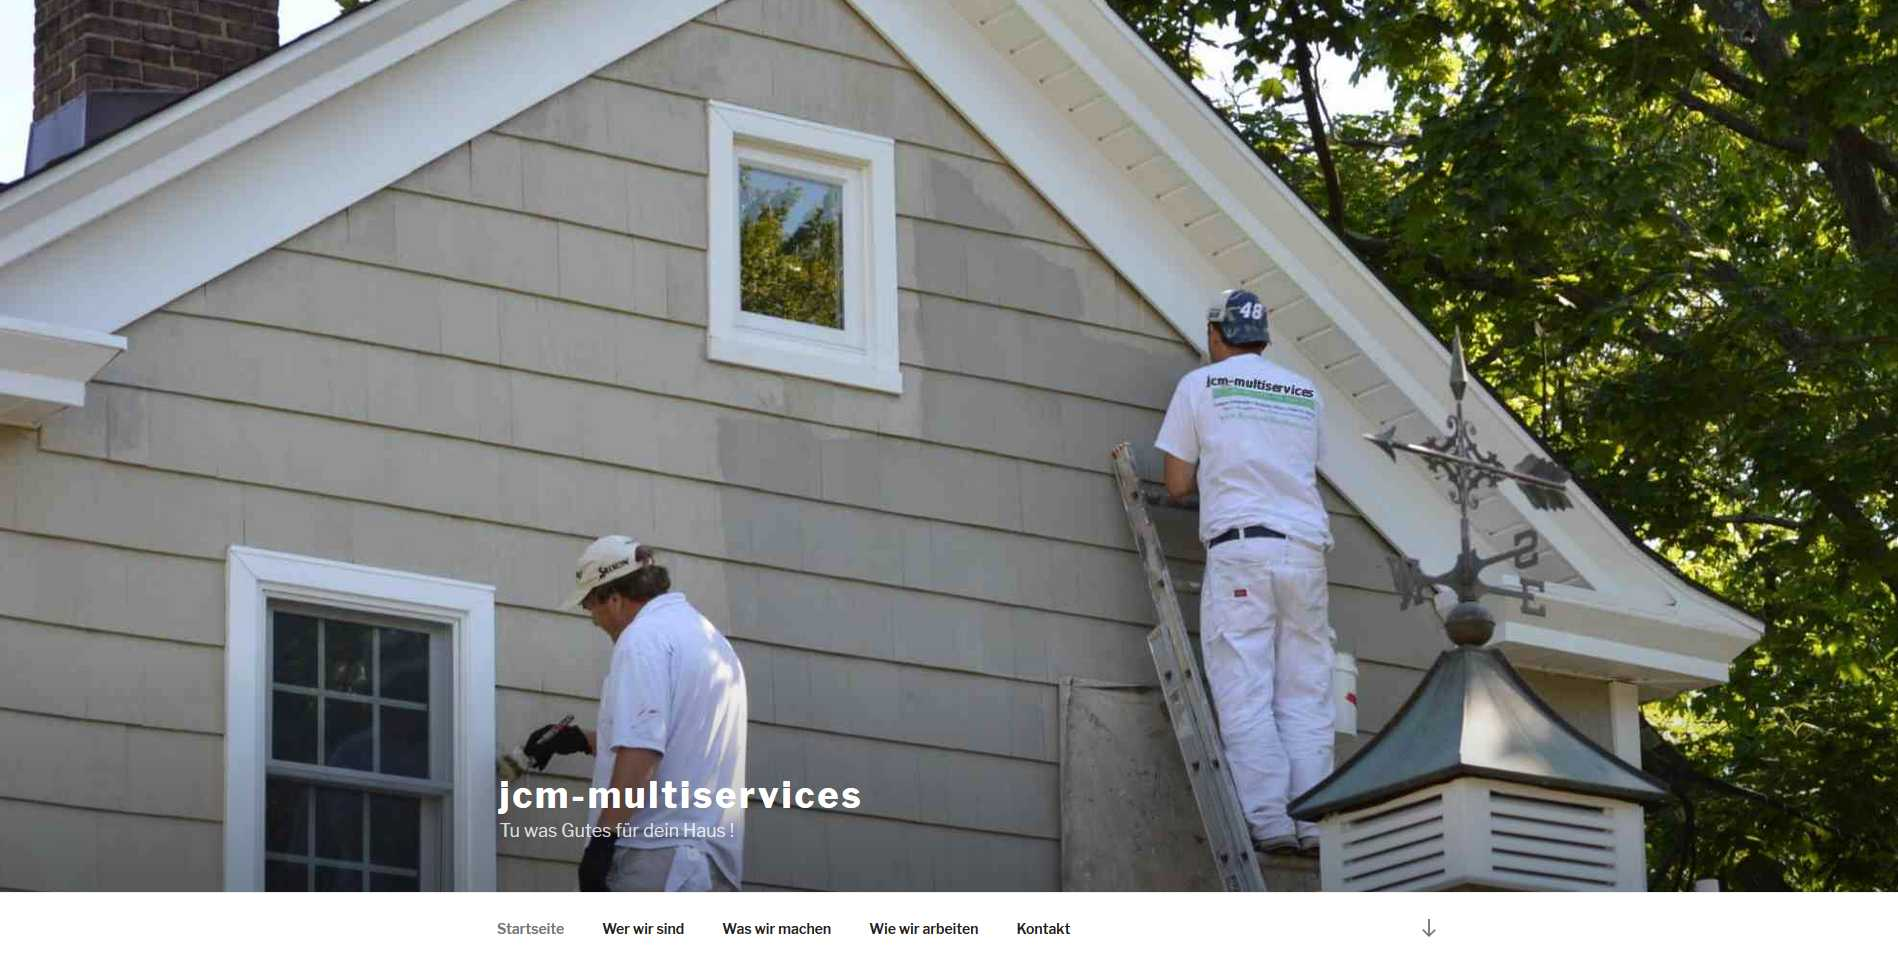 jcm-multiservices website